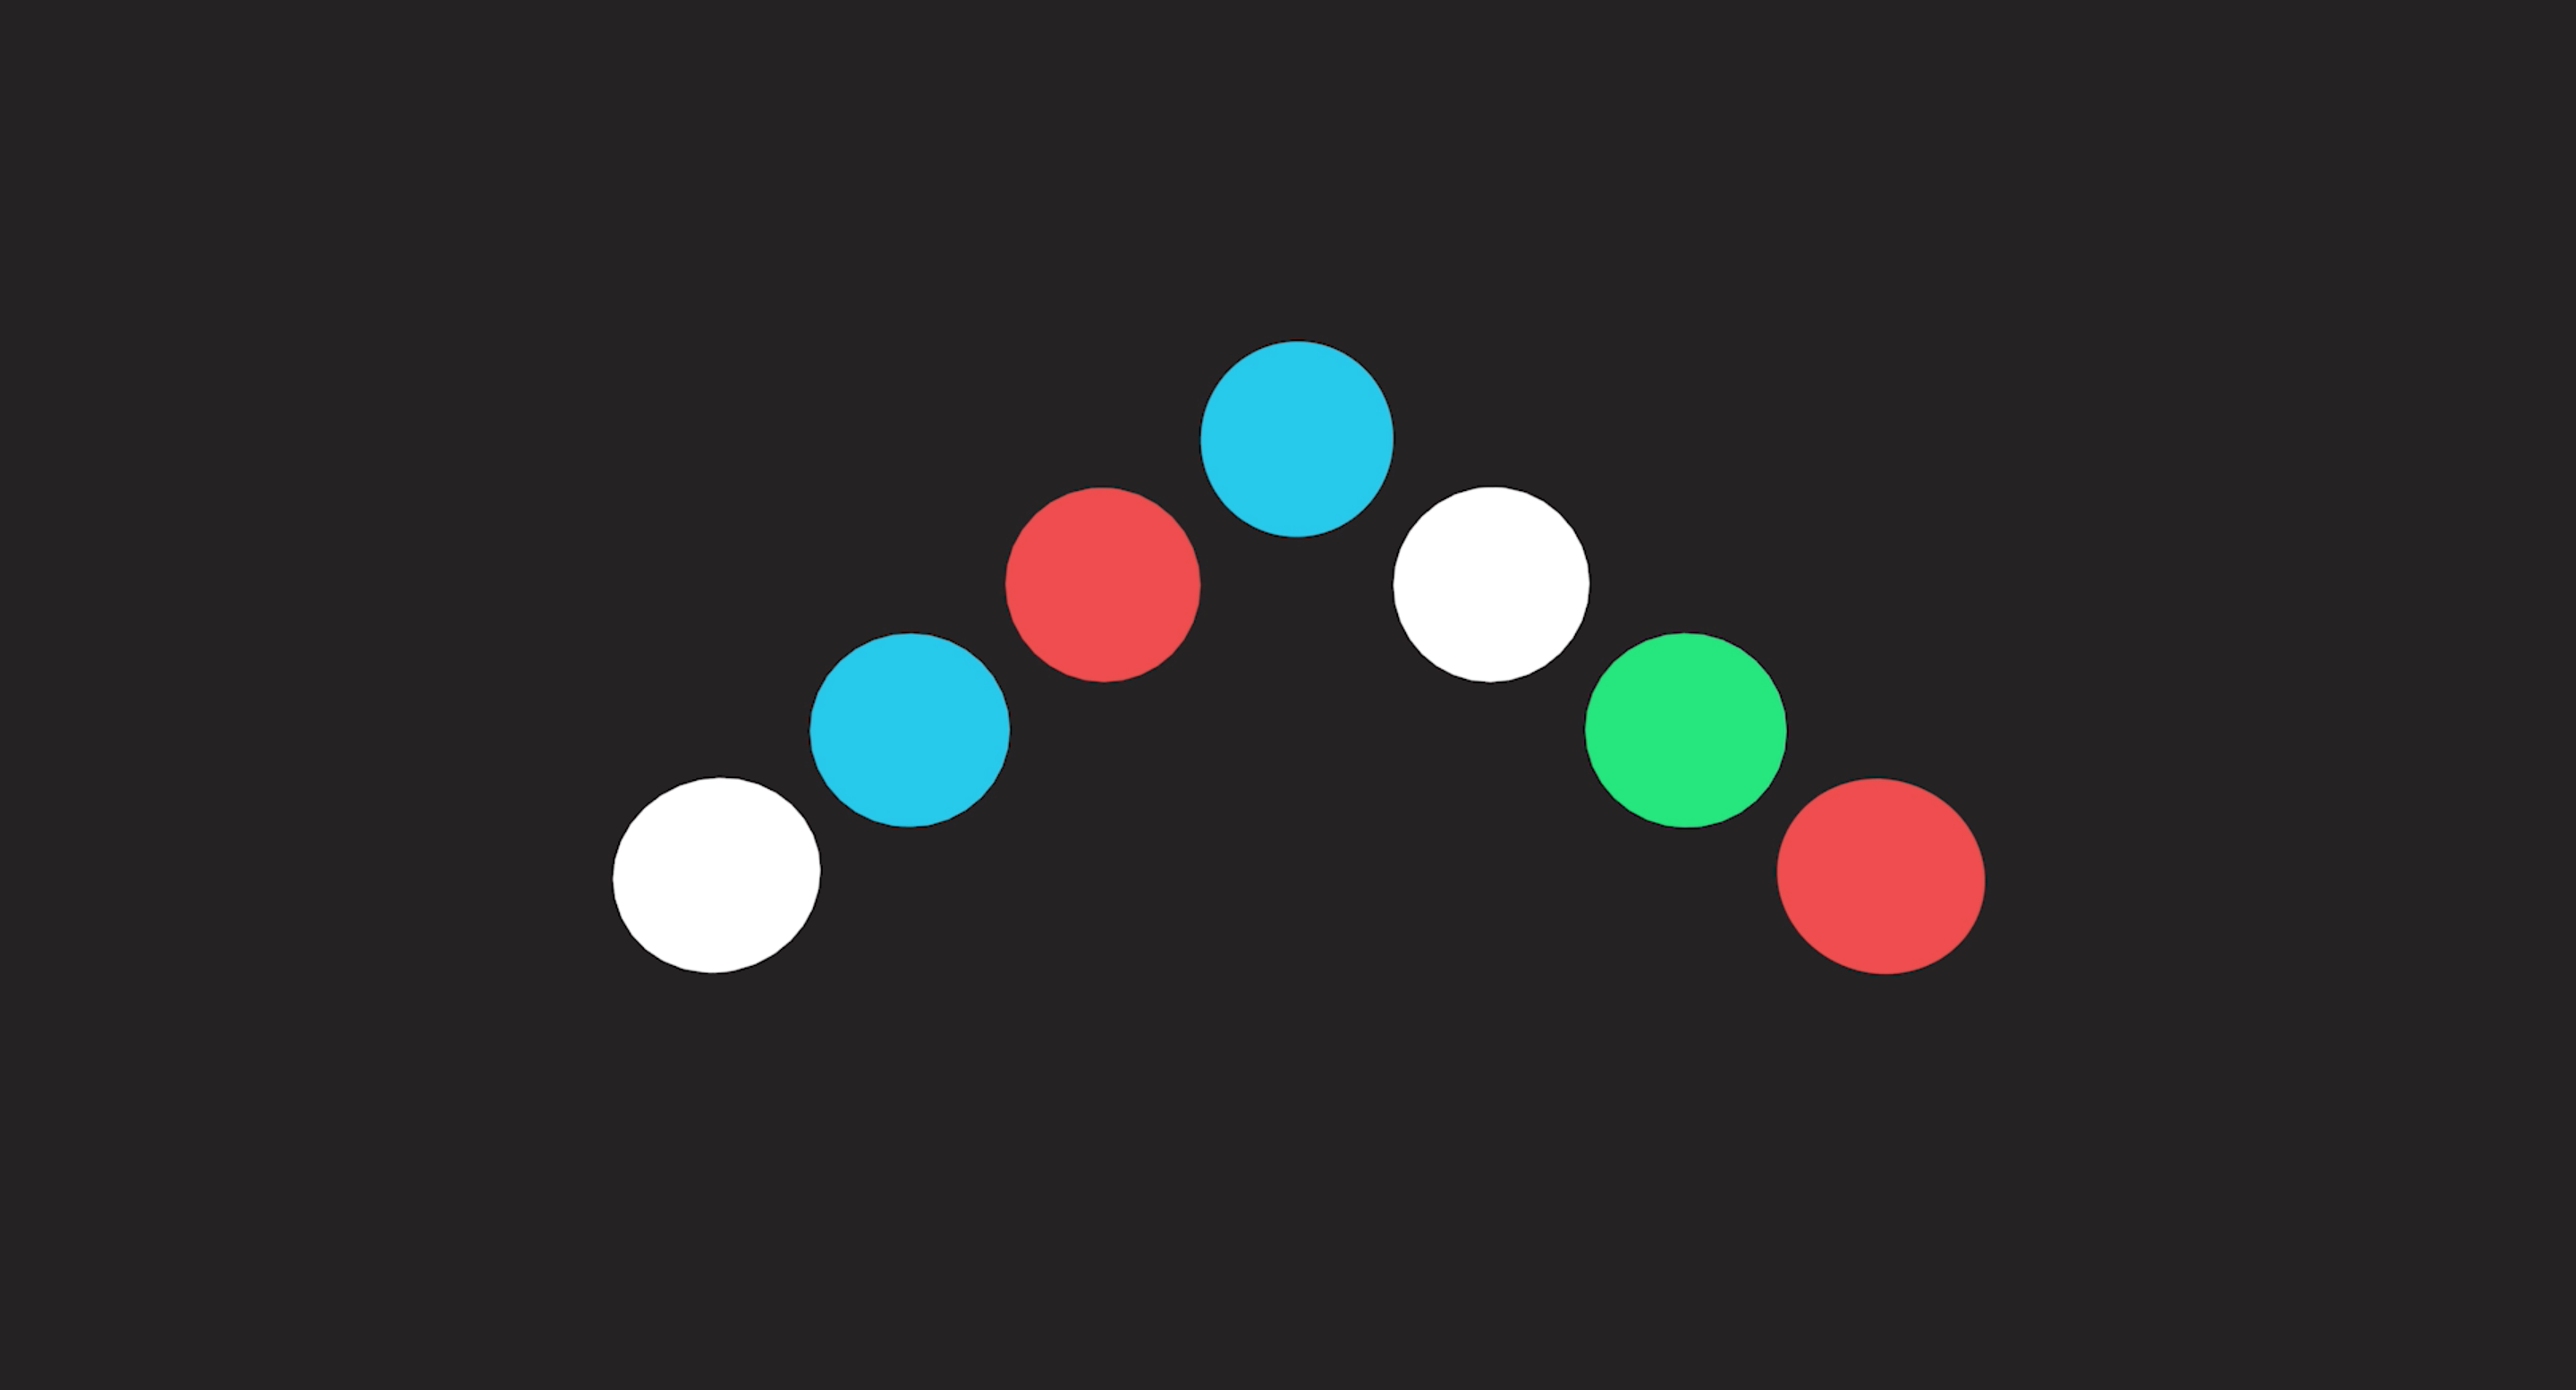 Elevator - Team-based hiring platform. Helping great teams and great companies do great work together.